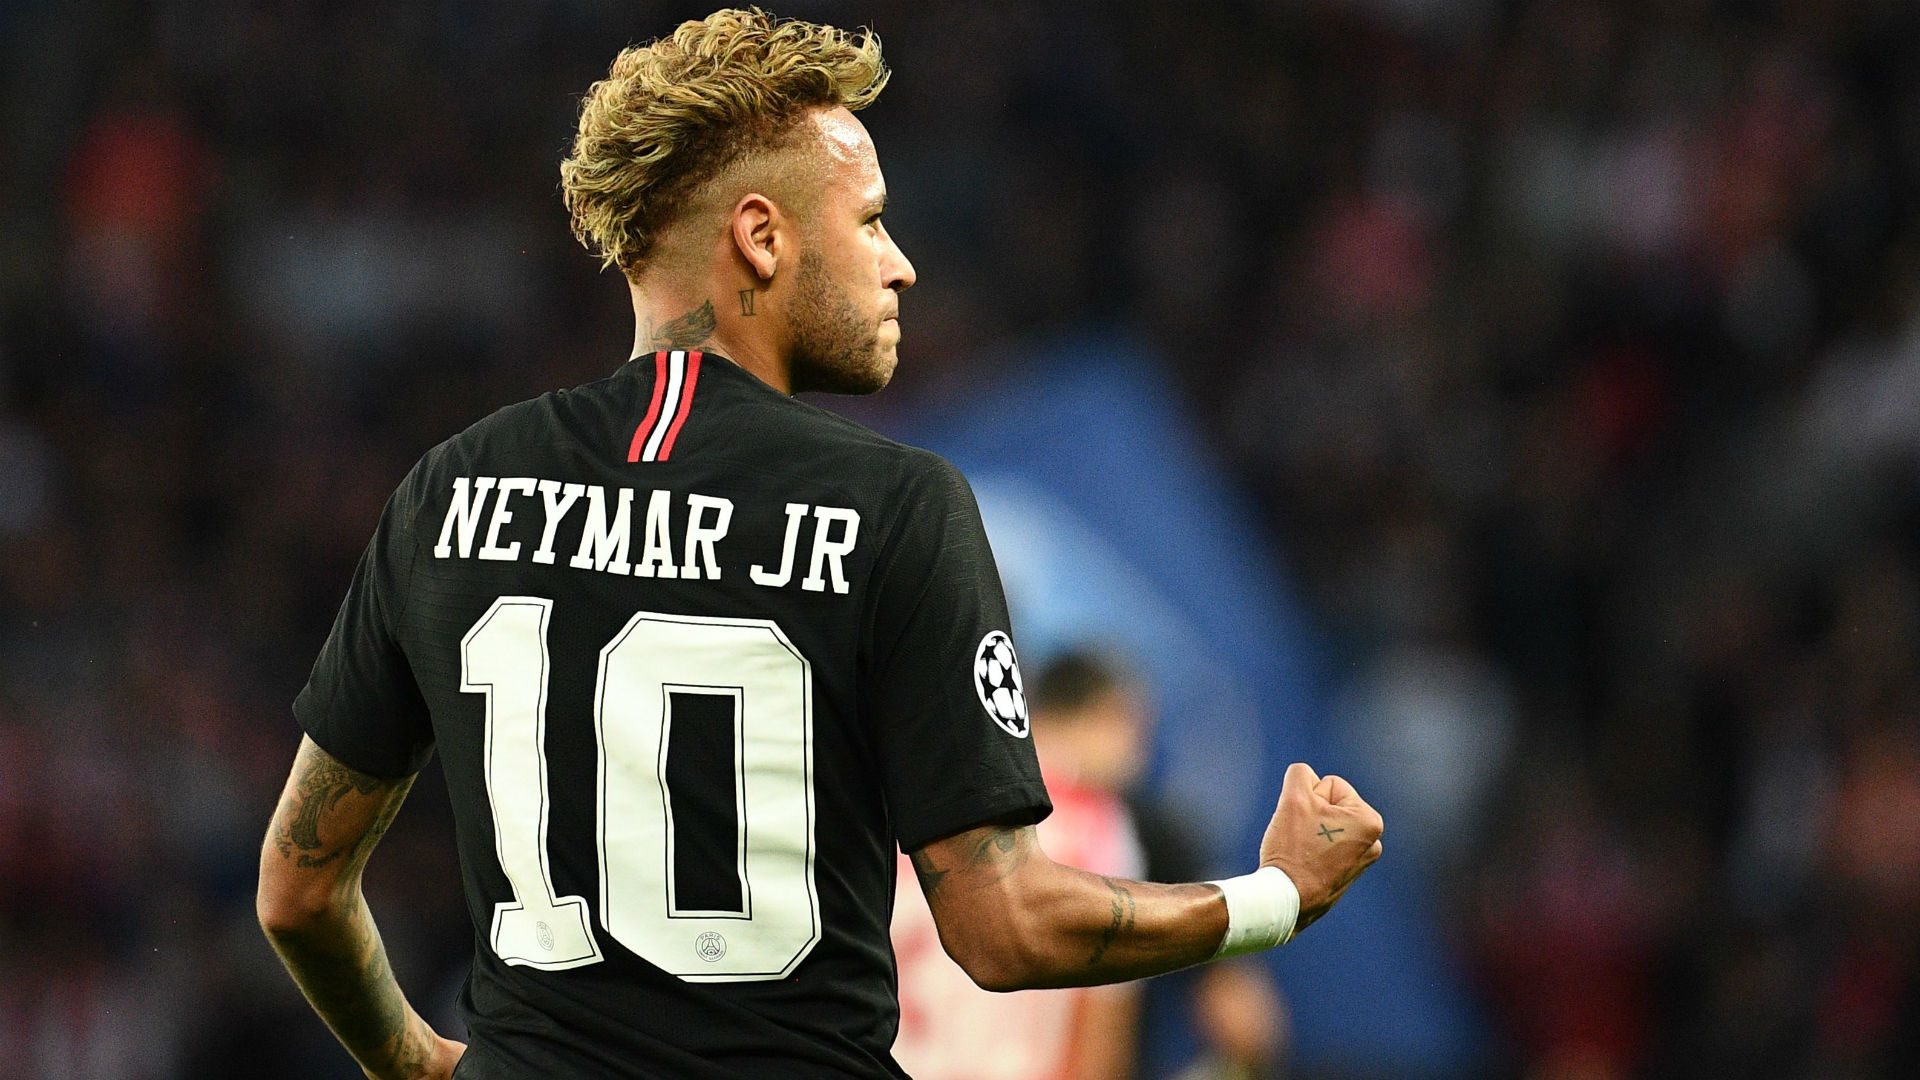 PSG: Neymar News: PSG Star Never Wanted To Take Brazil No. 10